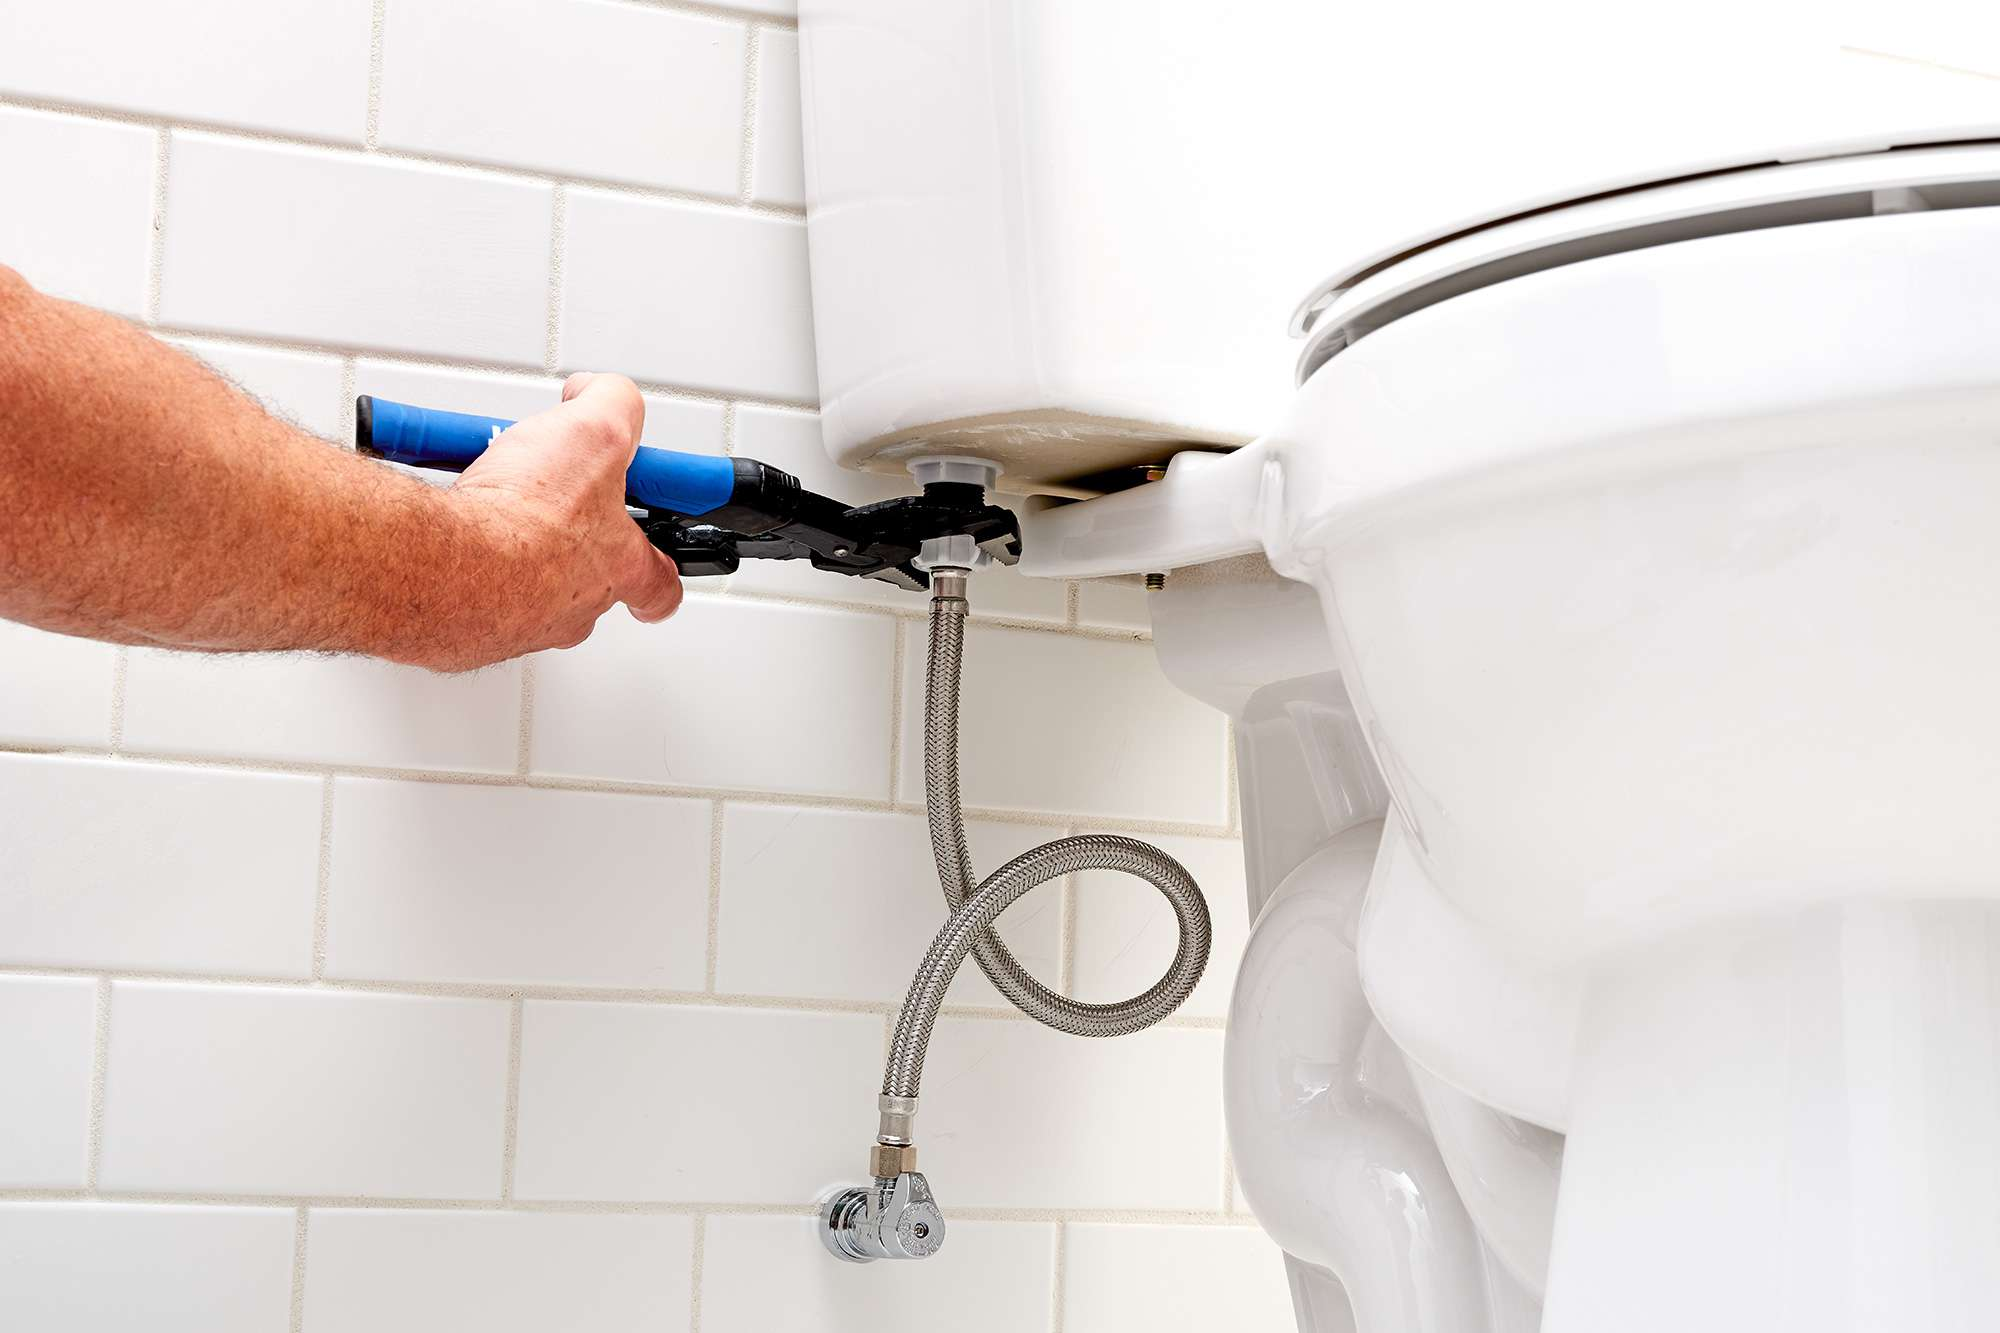 Supply line disconnected from toilet's fill valve with channel-lock pliers